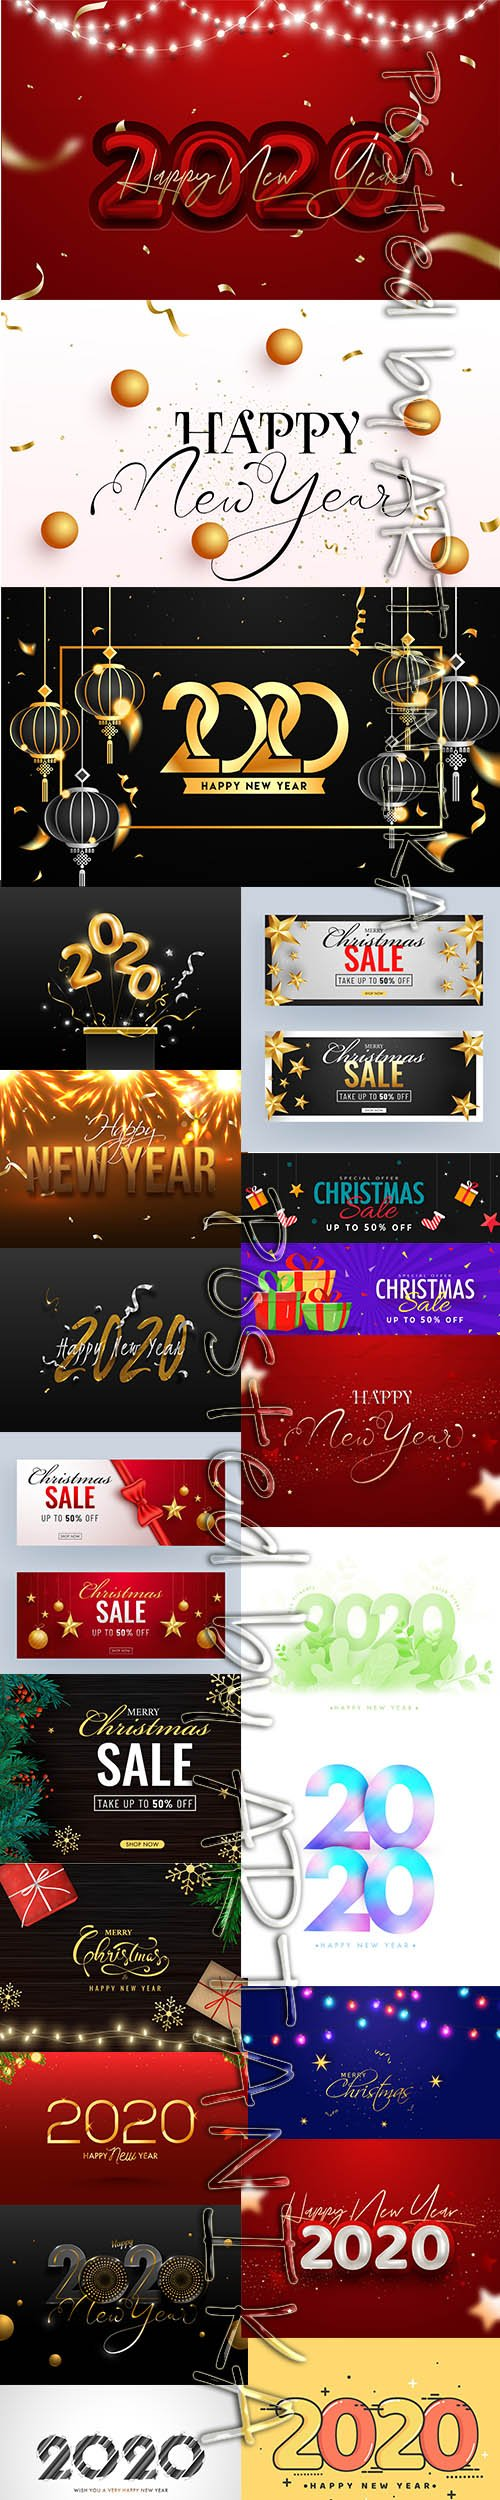 Happy New Year 2020 Illustration and Christmas Backgrounds Set